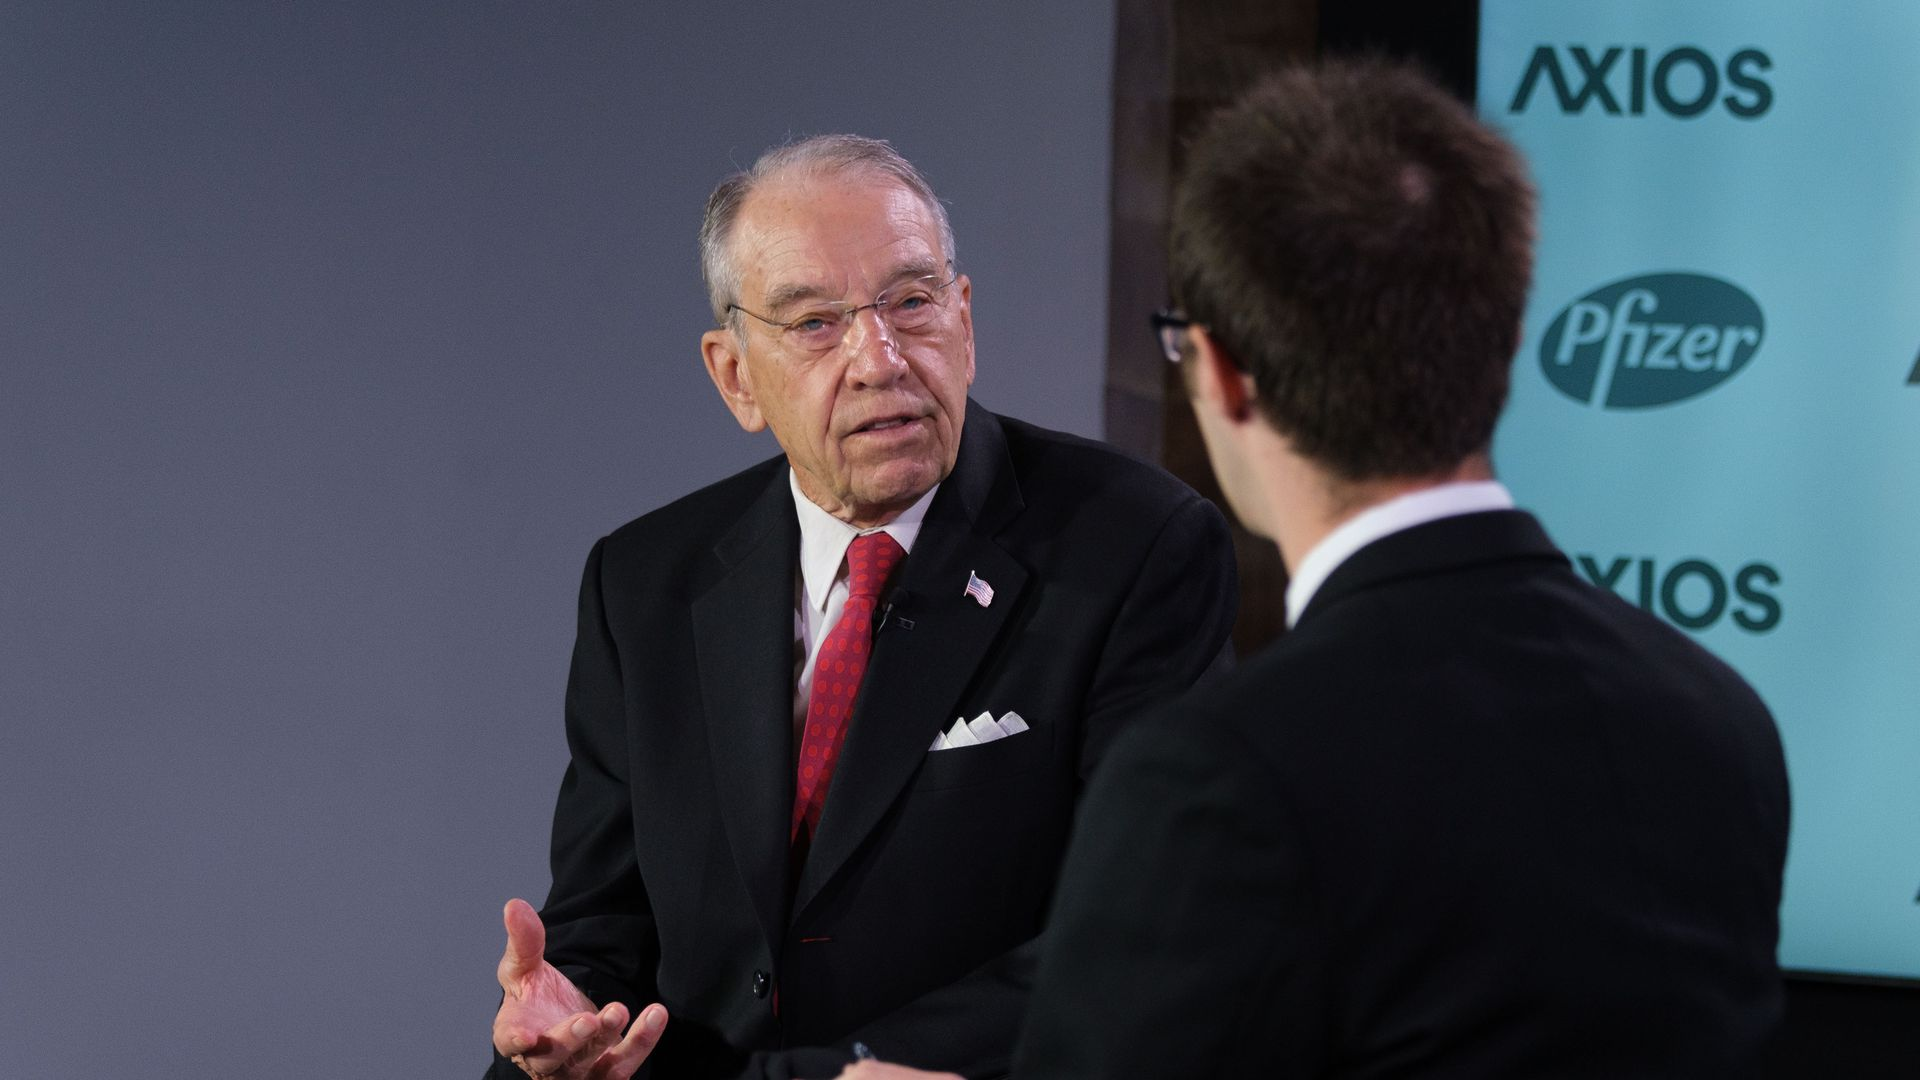 Senator Chuck Grassley in conversation with Axios Health Care reporter, Bob Herman.